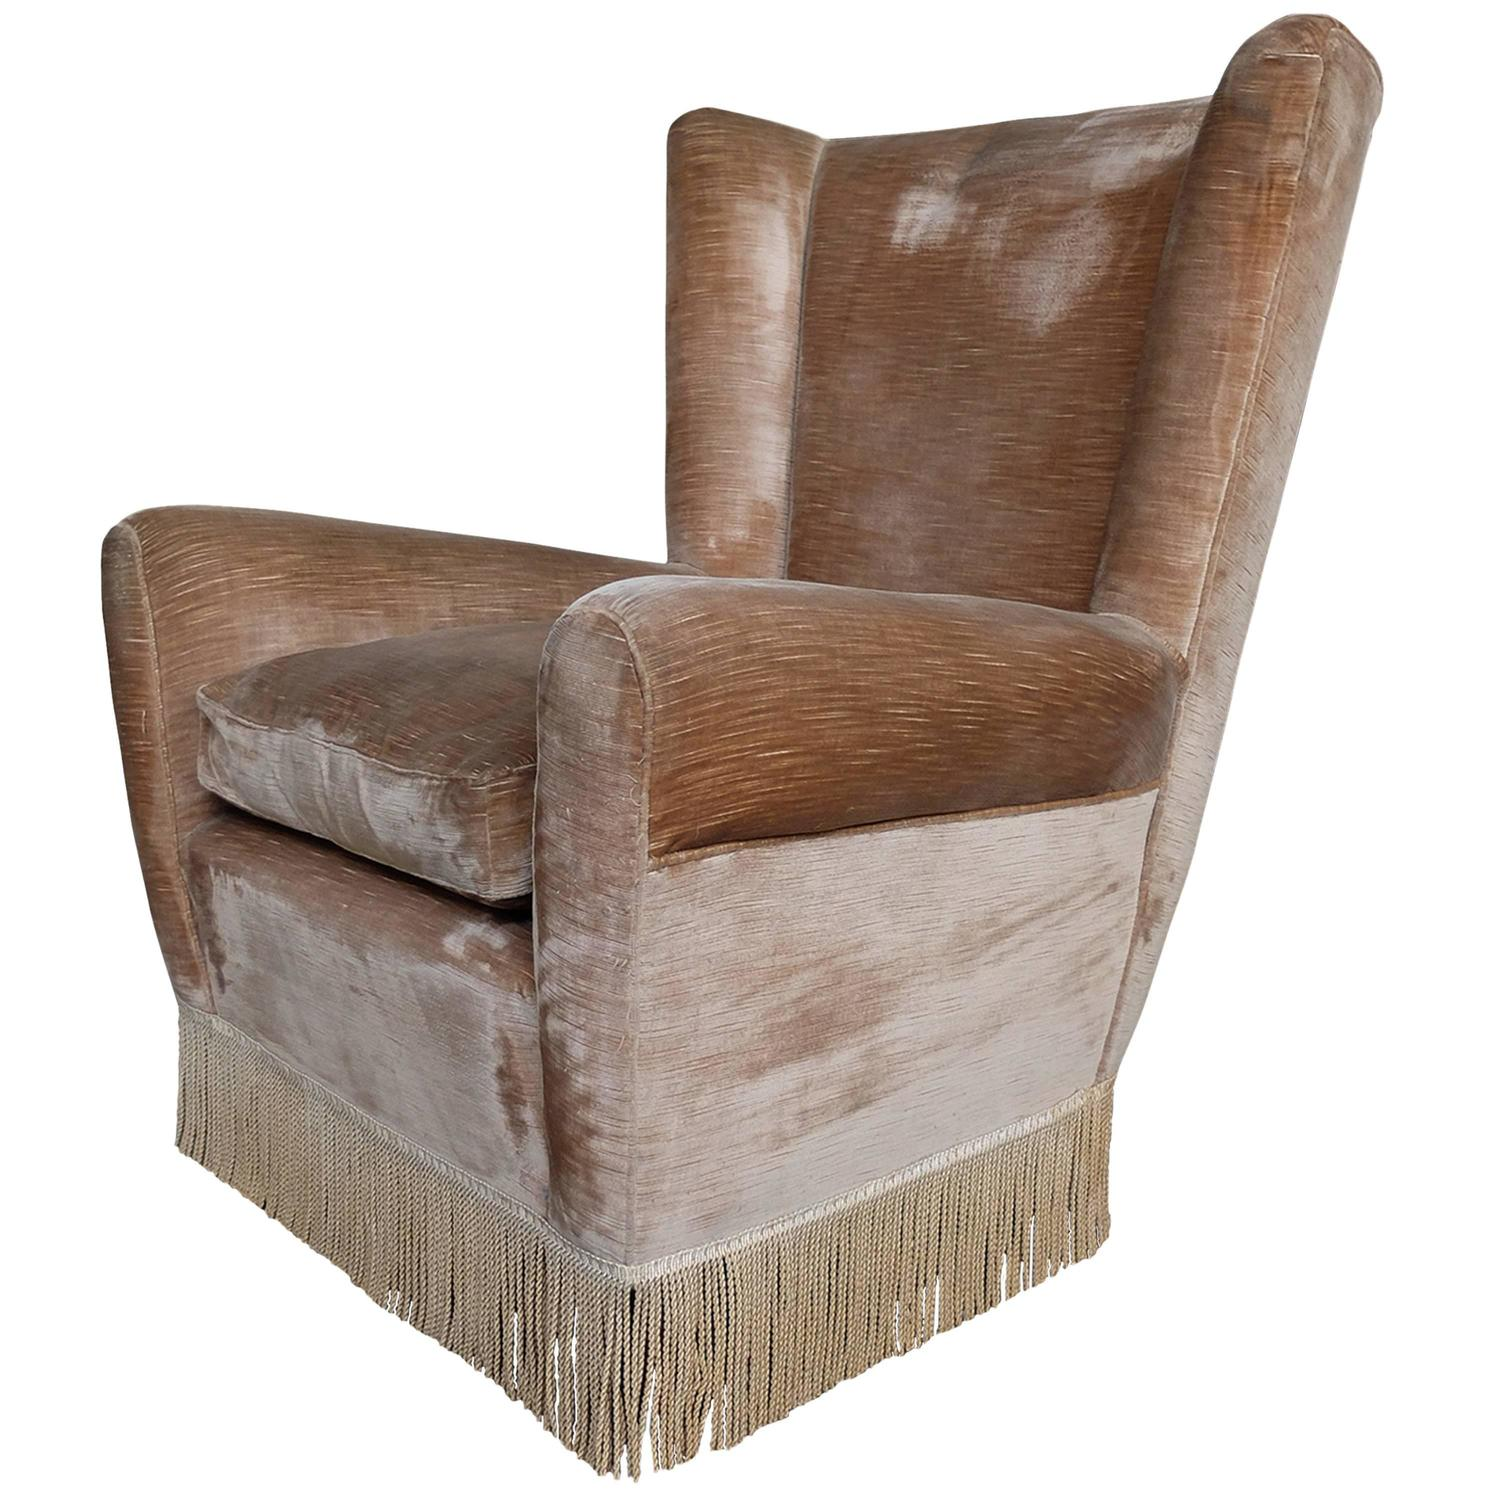 Cozy armchair 3d models arm chair giorgetti cozy for Cozy accent chair